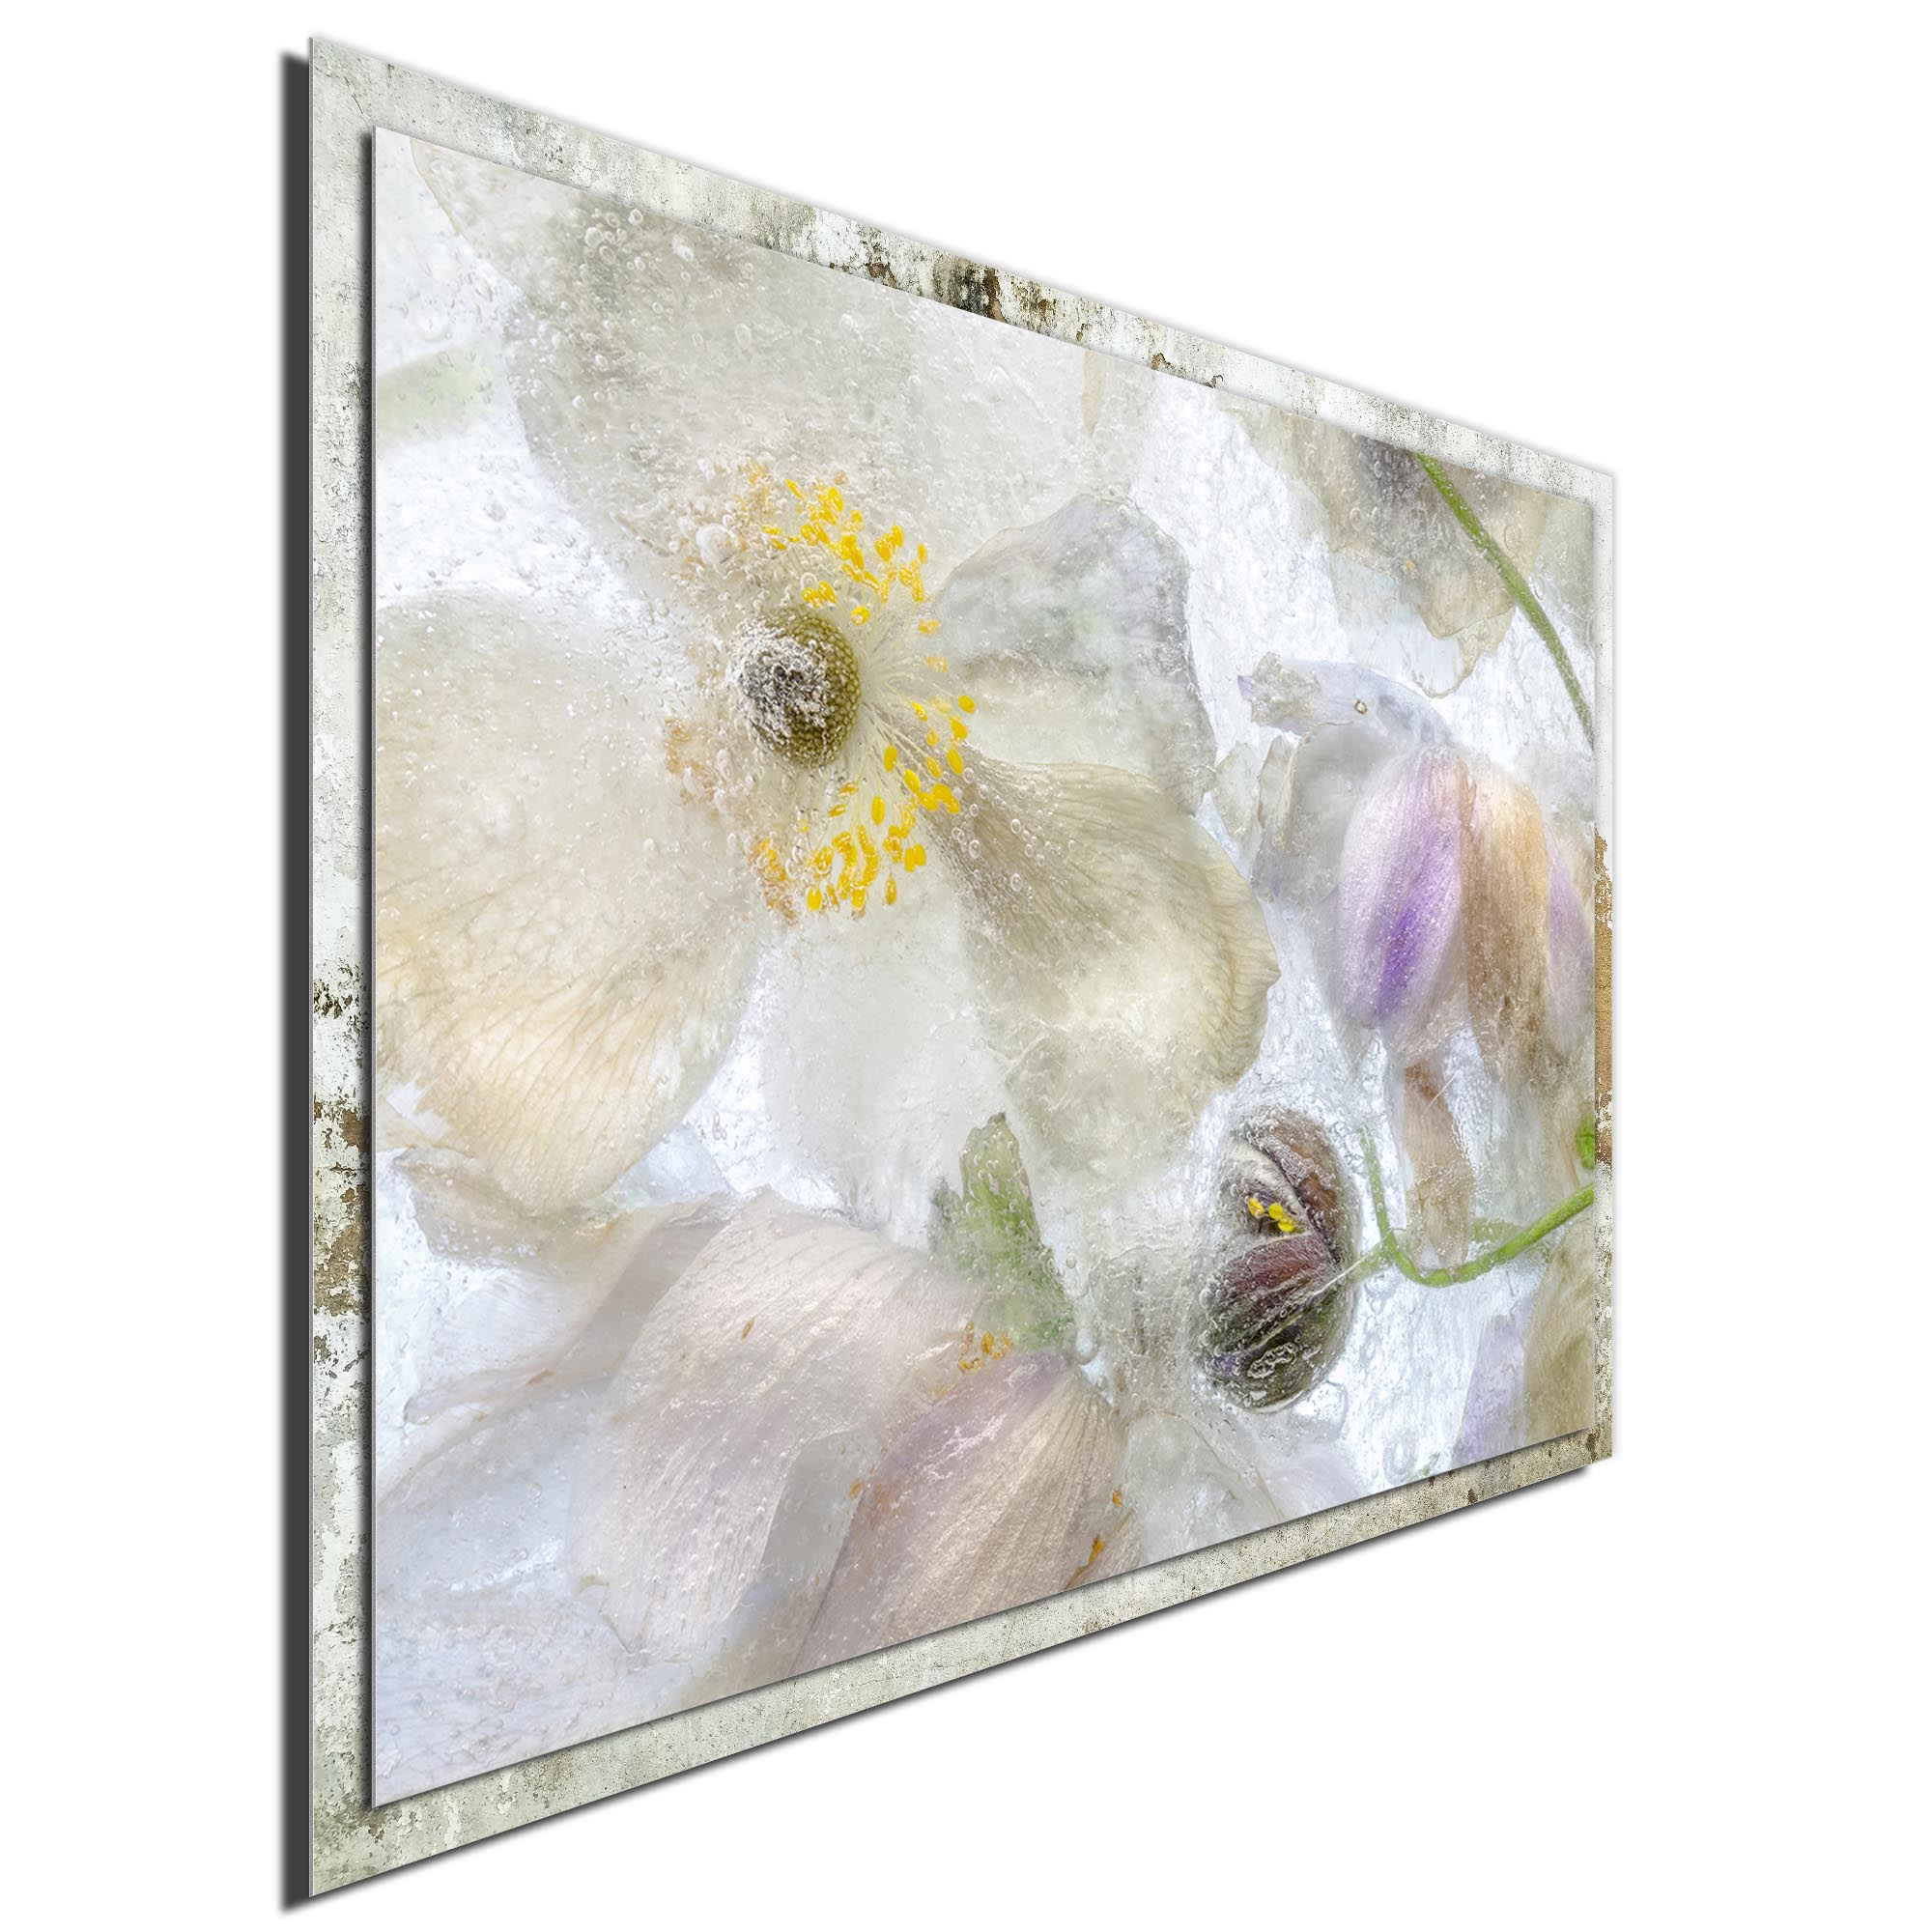 Anemone Frost by Mandy Disher - Modern Farmhouse Floral on Metal - Image 2